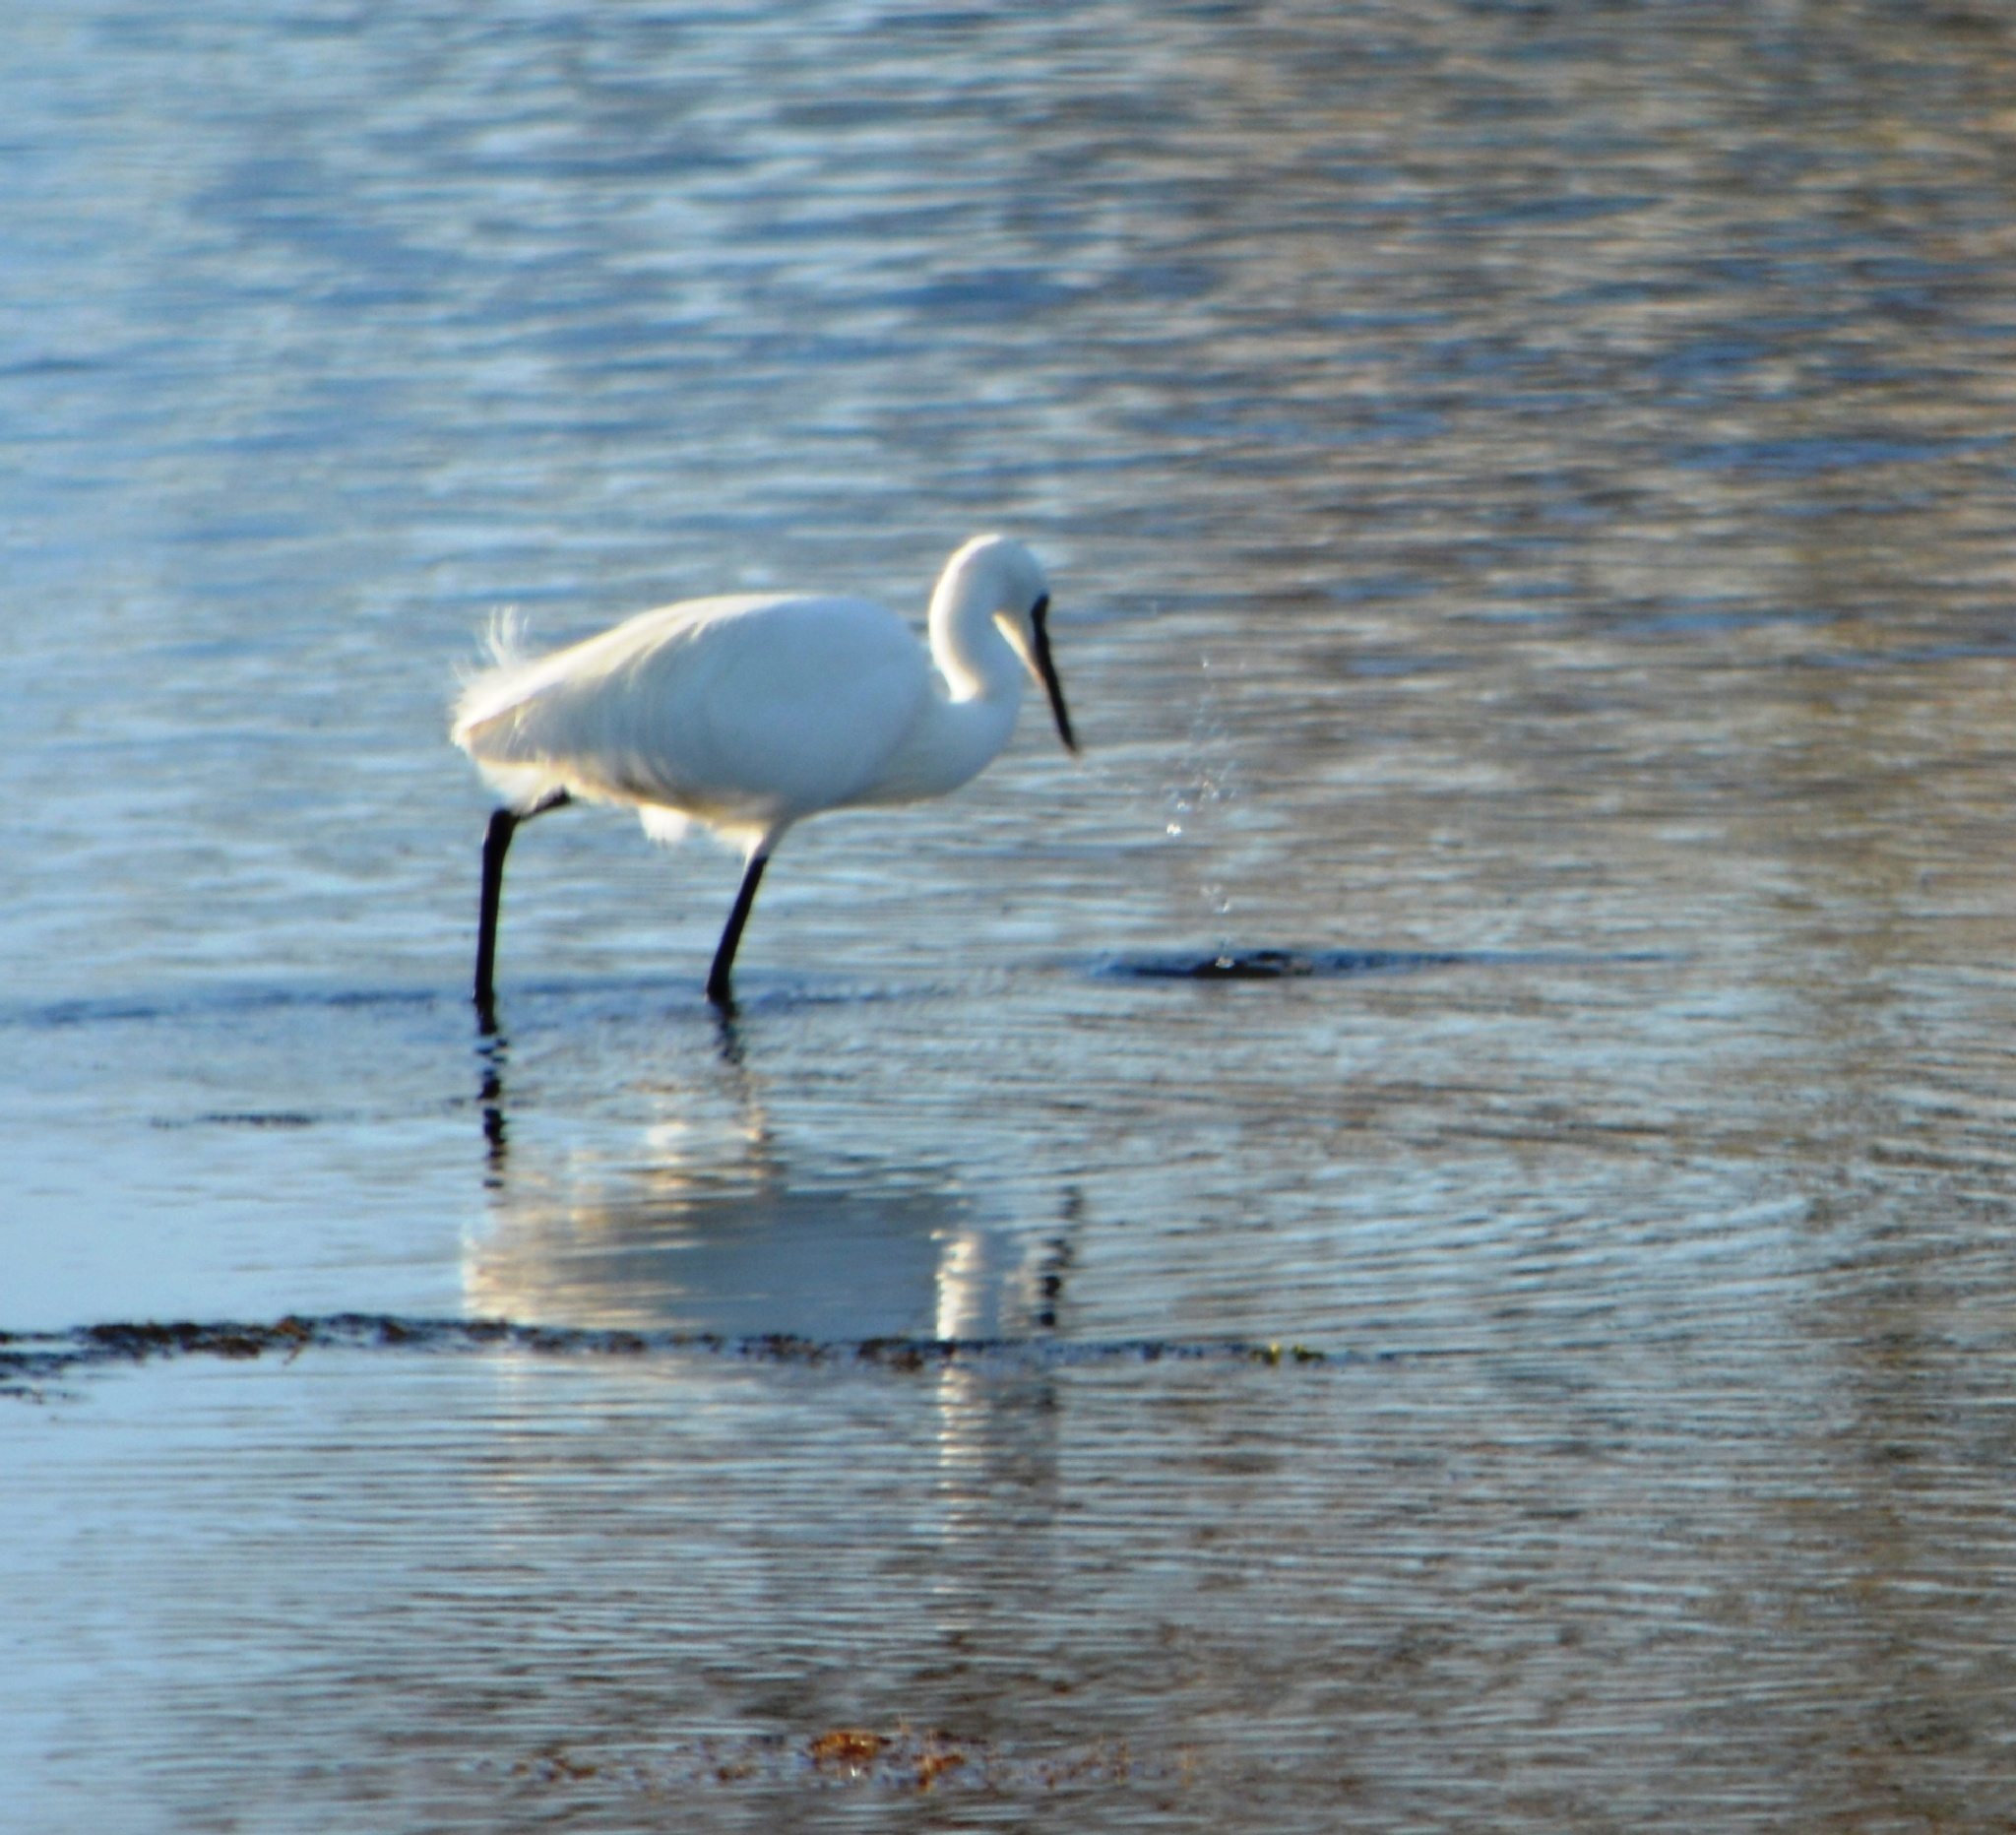 Great White Heron fishing by alison16